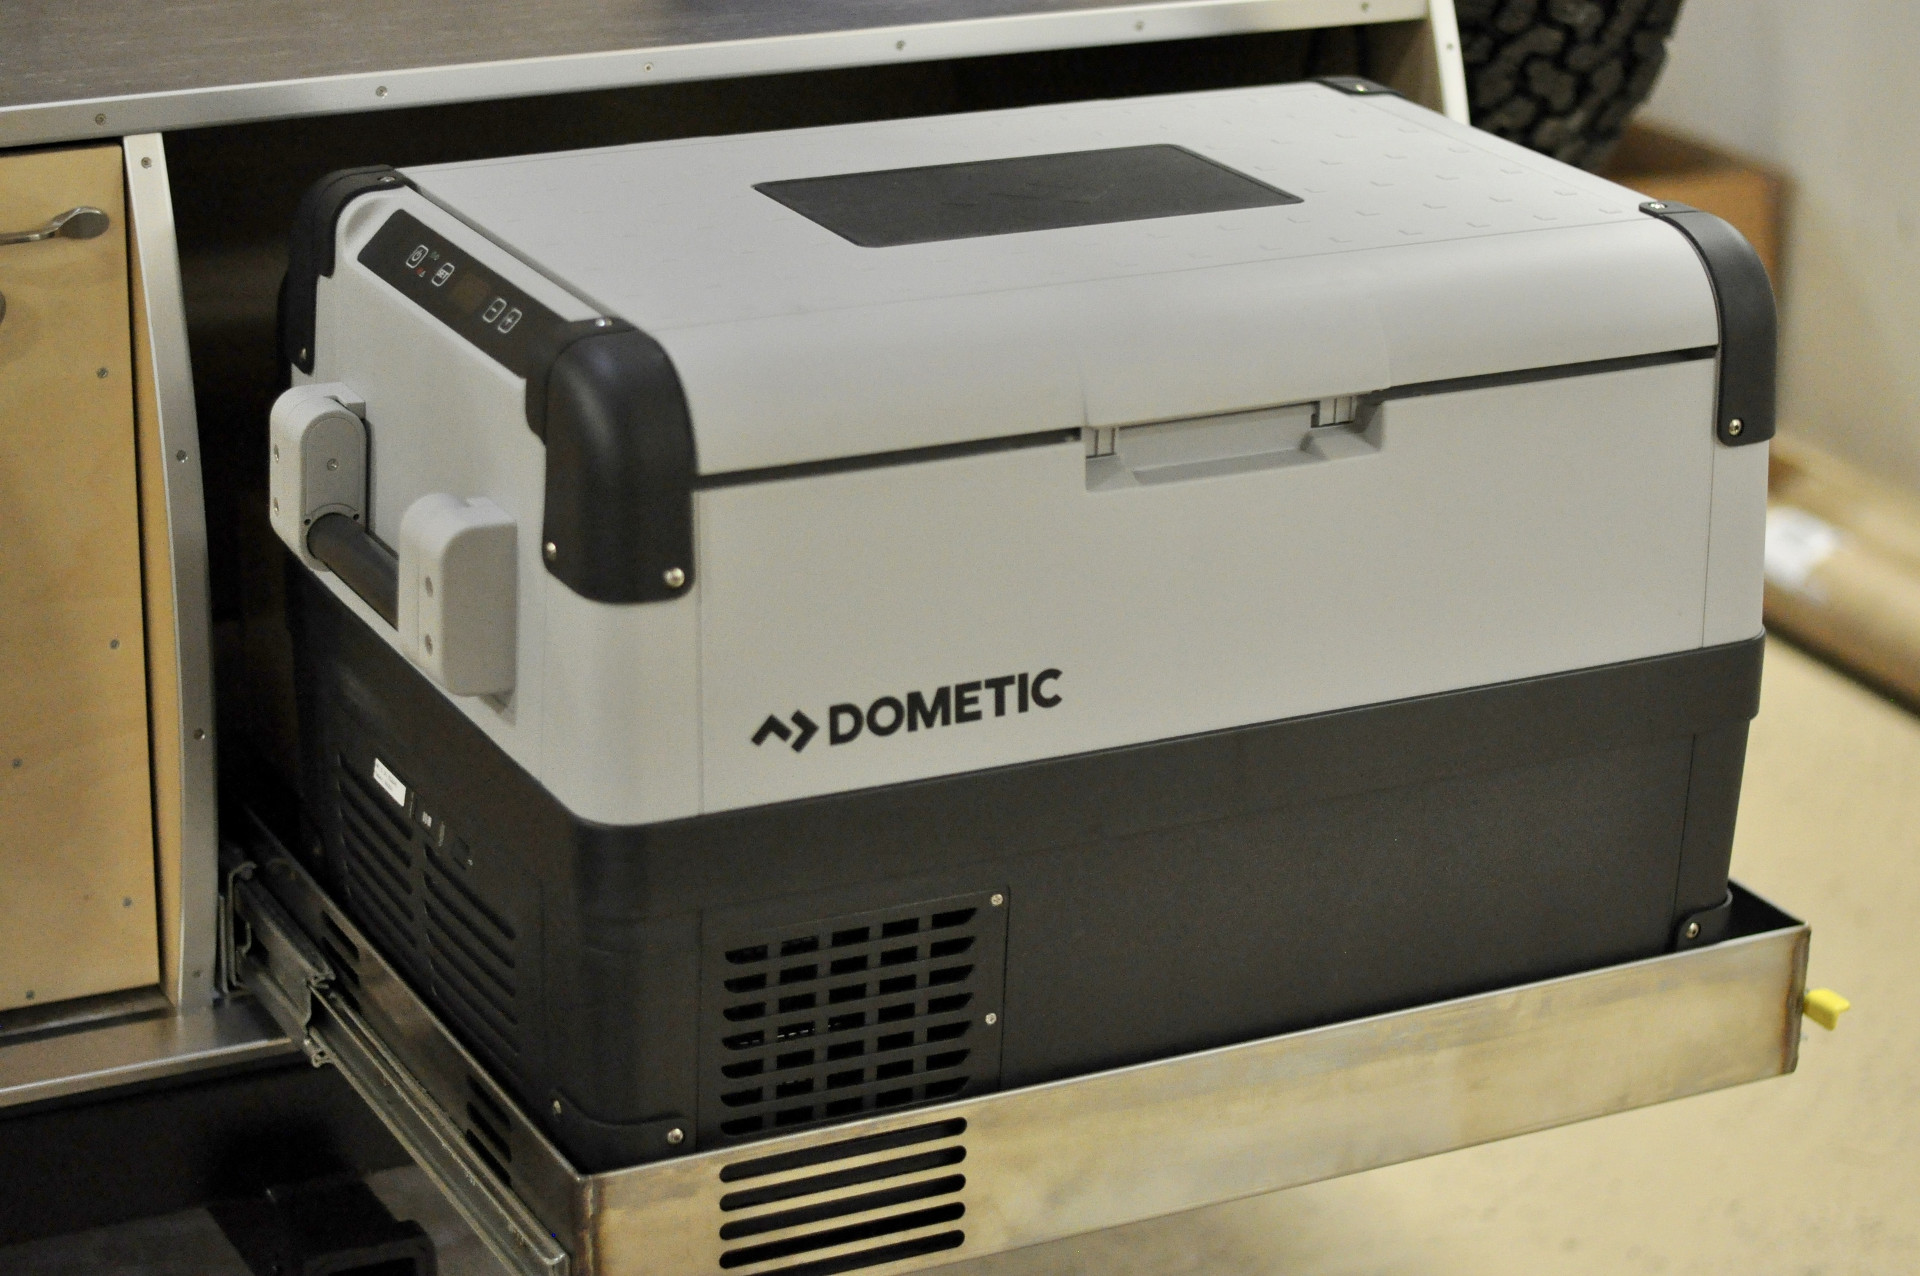 dometic-fridge-freezer.jpg